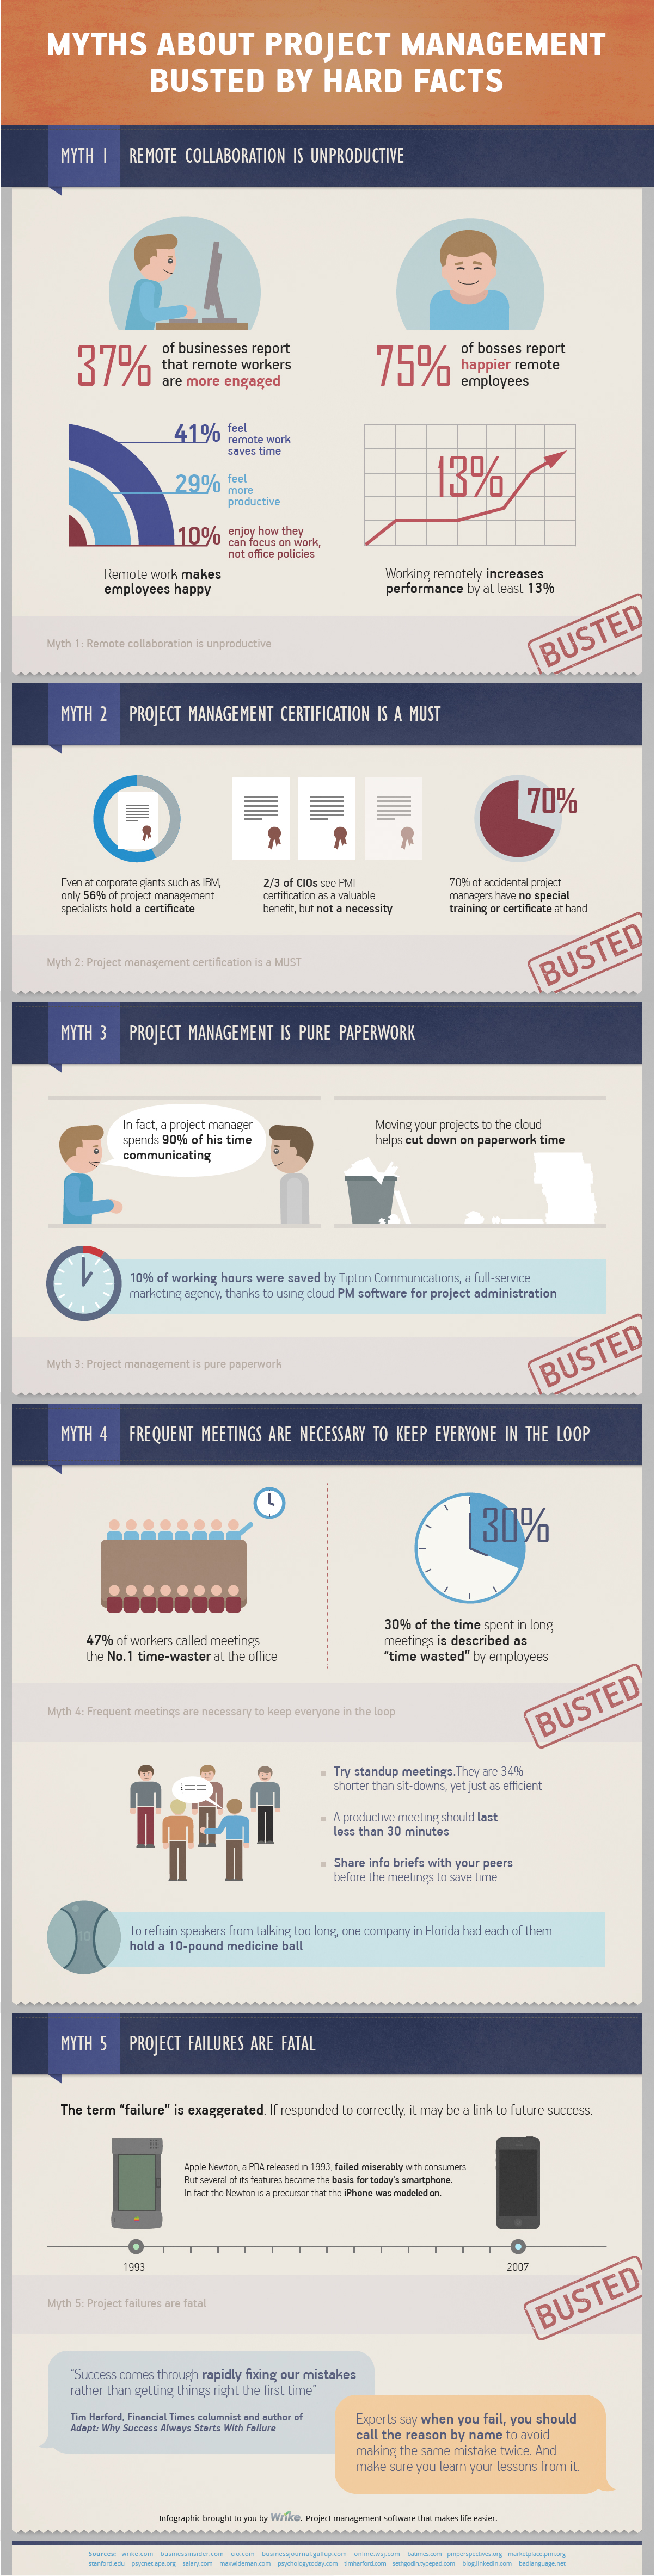 5 Busted Myths About Project Management